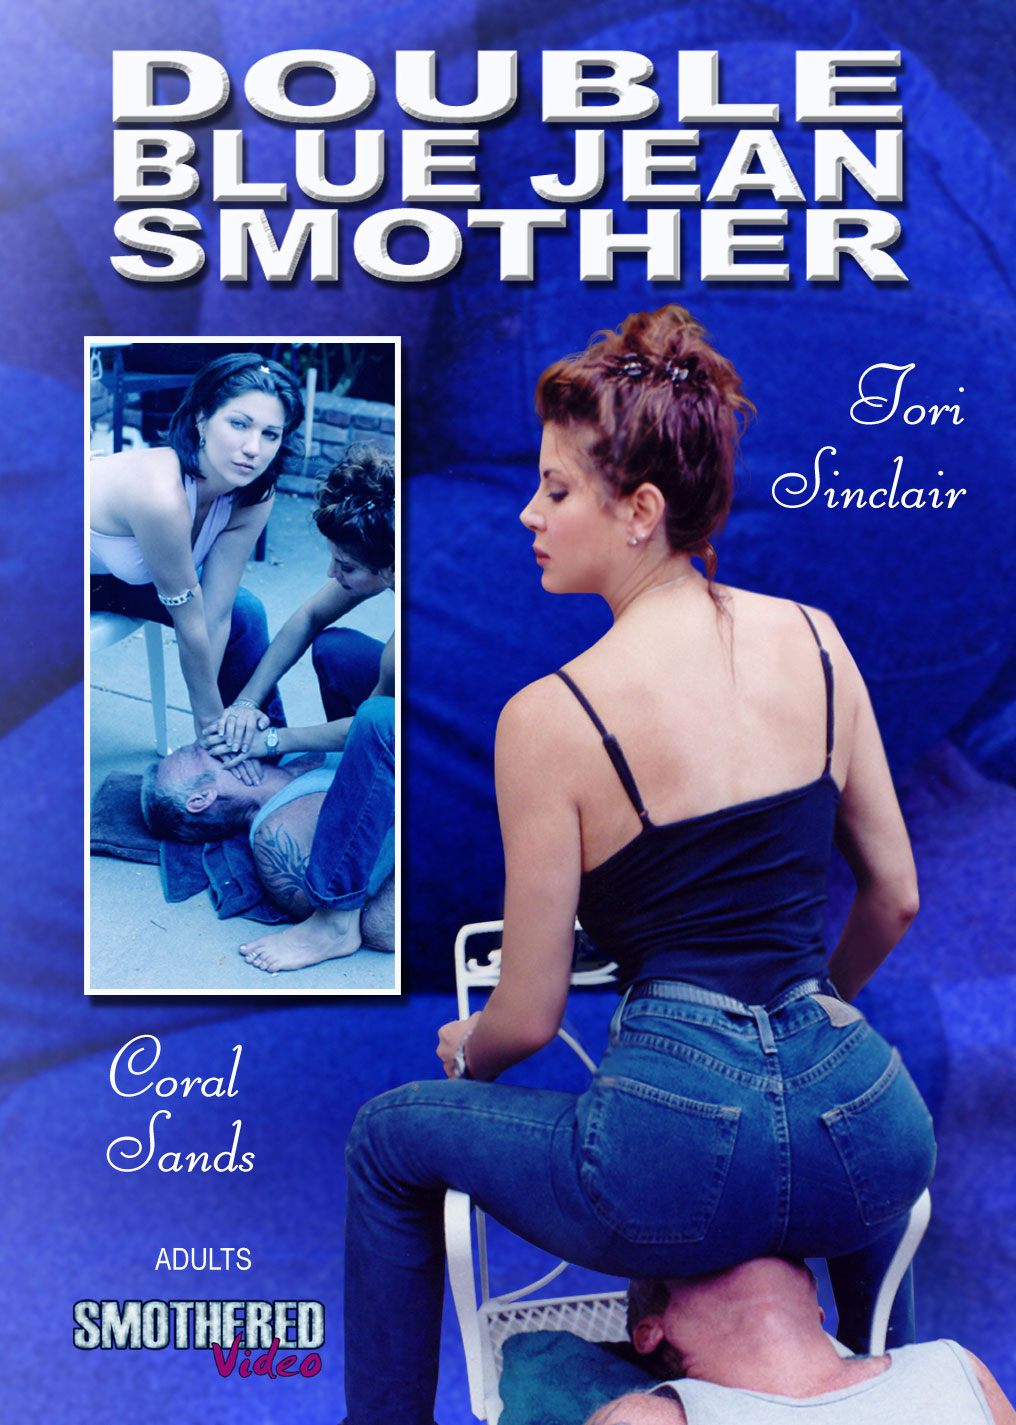 Double Blue Jean Smother - (Full Movie)